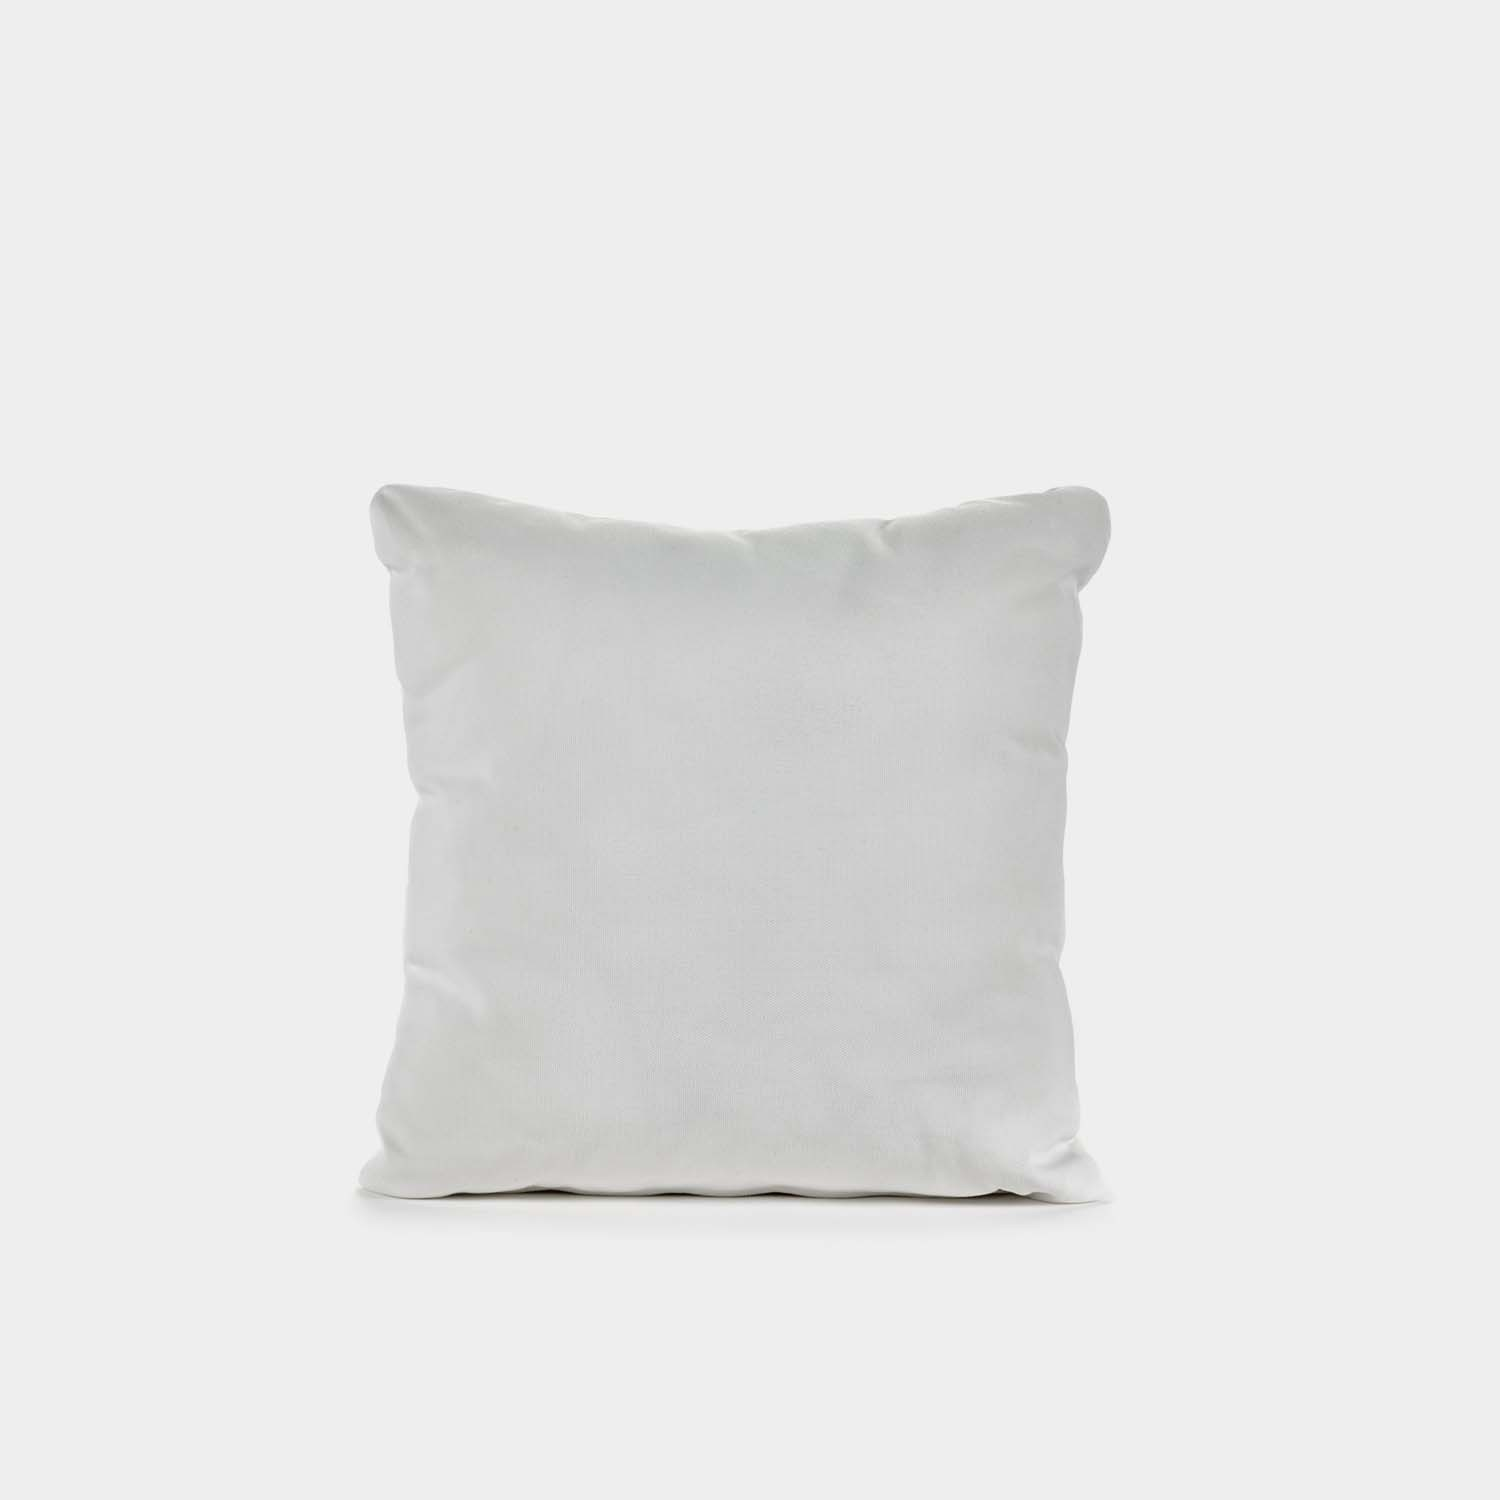 Decorative Cushion, Square, Outdoor, White